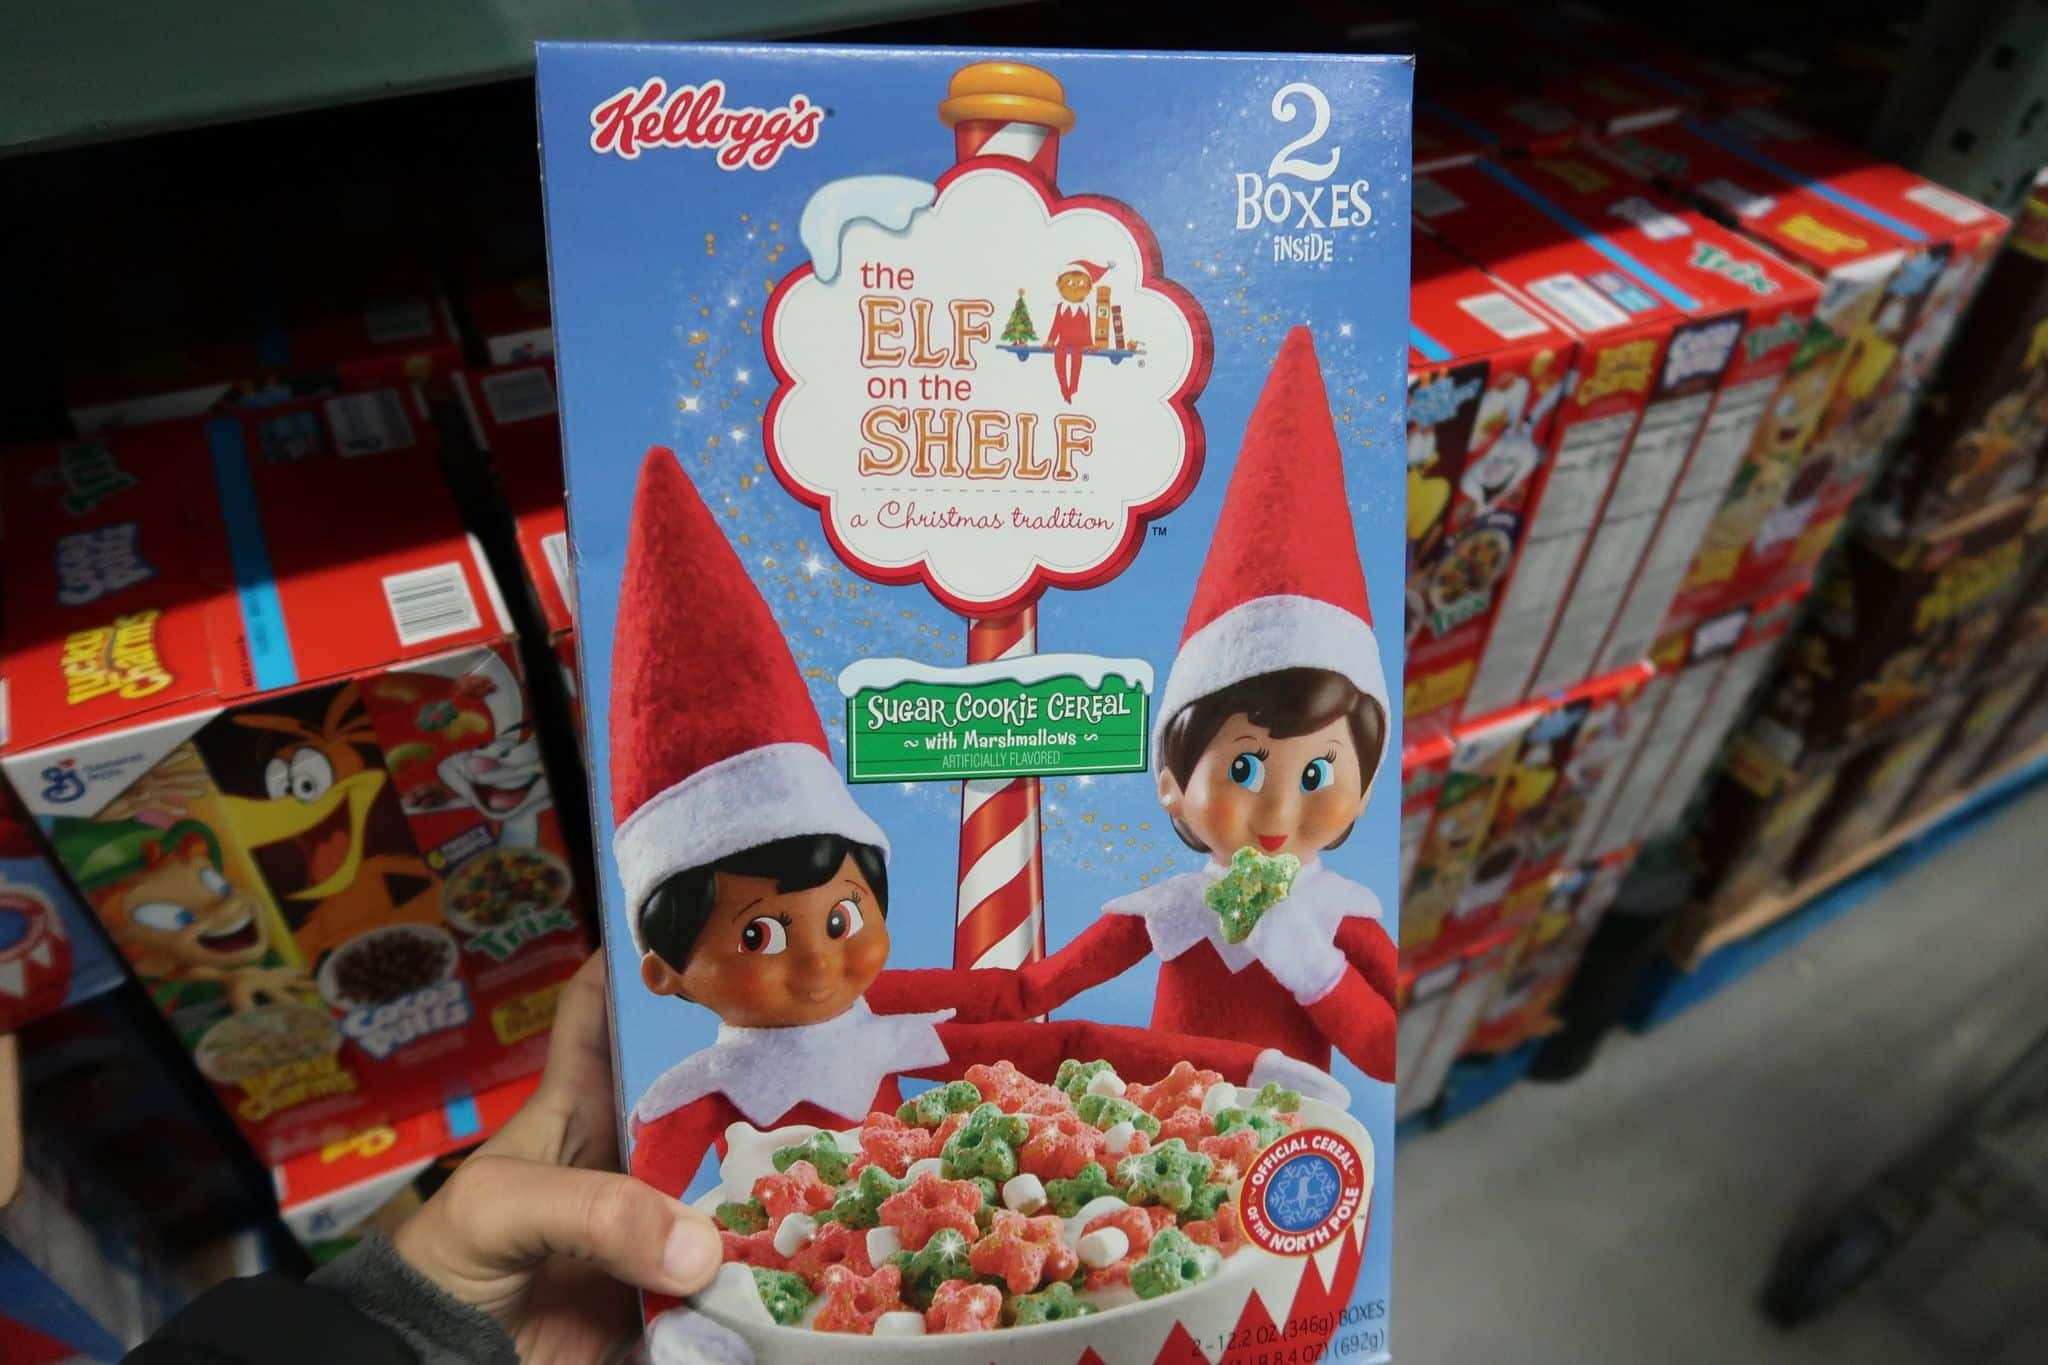 The Elf on the Shelf Cereal $4.49 for 2 boxes!